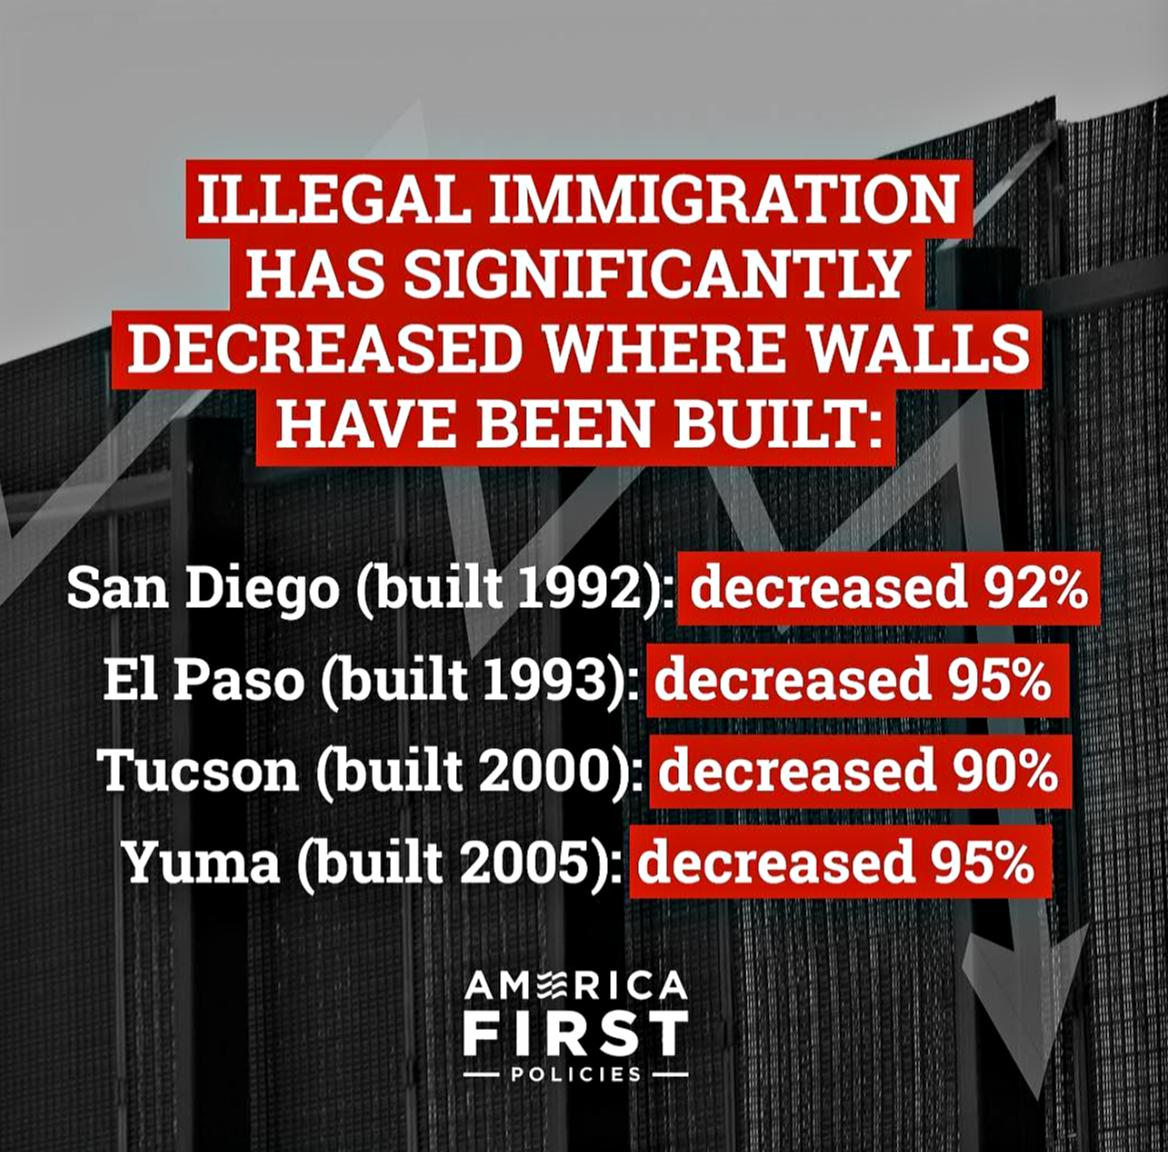 You&#39;ve got to wonder what some of these places where walls have worked so well, despite the opposition, are still &quot;Sanctuary Cities&quot; and insist on remaining that way...What&#39;s in it for them? #WeBuildTheWall @AmericaFirstPol <br>http://pic.twitter.com/MuxVku7OrQ  https:// twitter.com/WeBuildtheWall /status/1107736586559459329 &nbsp; …